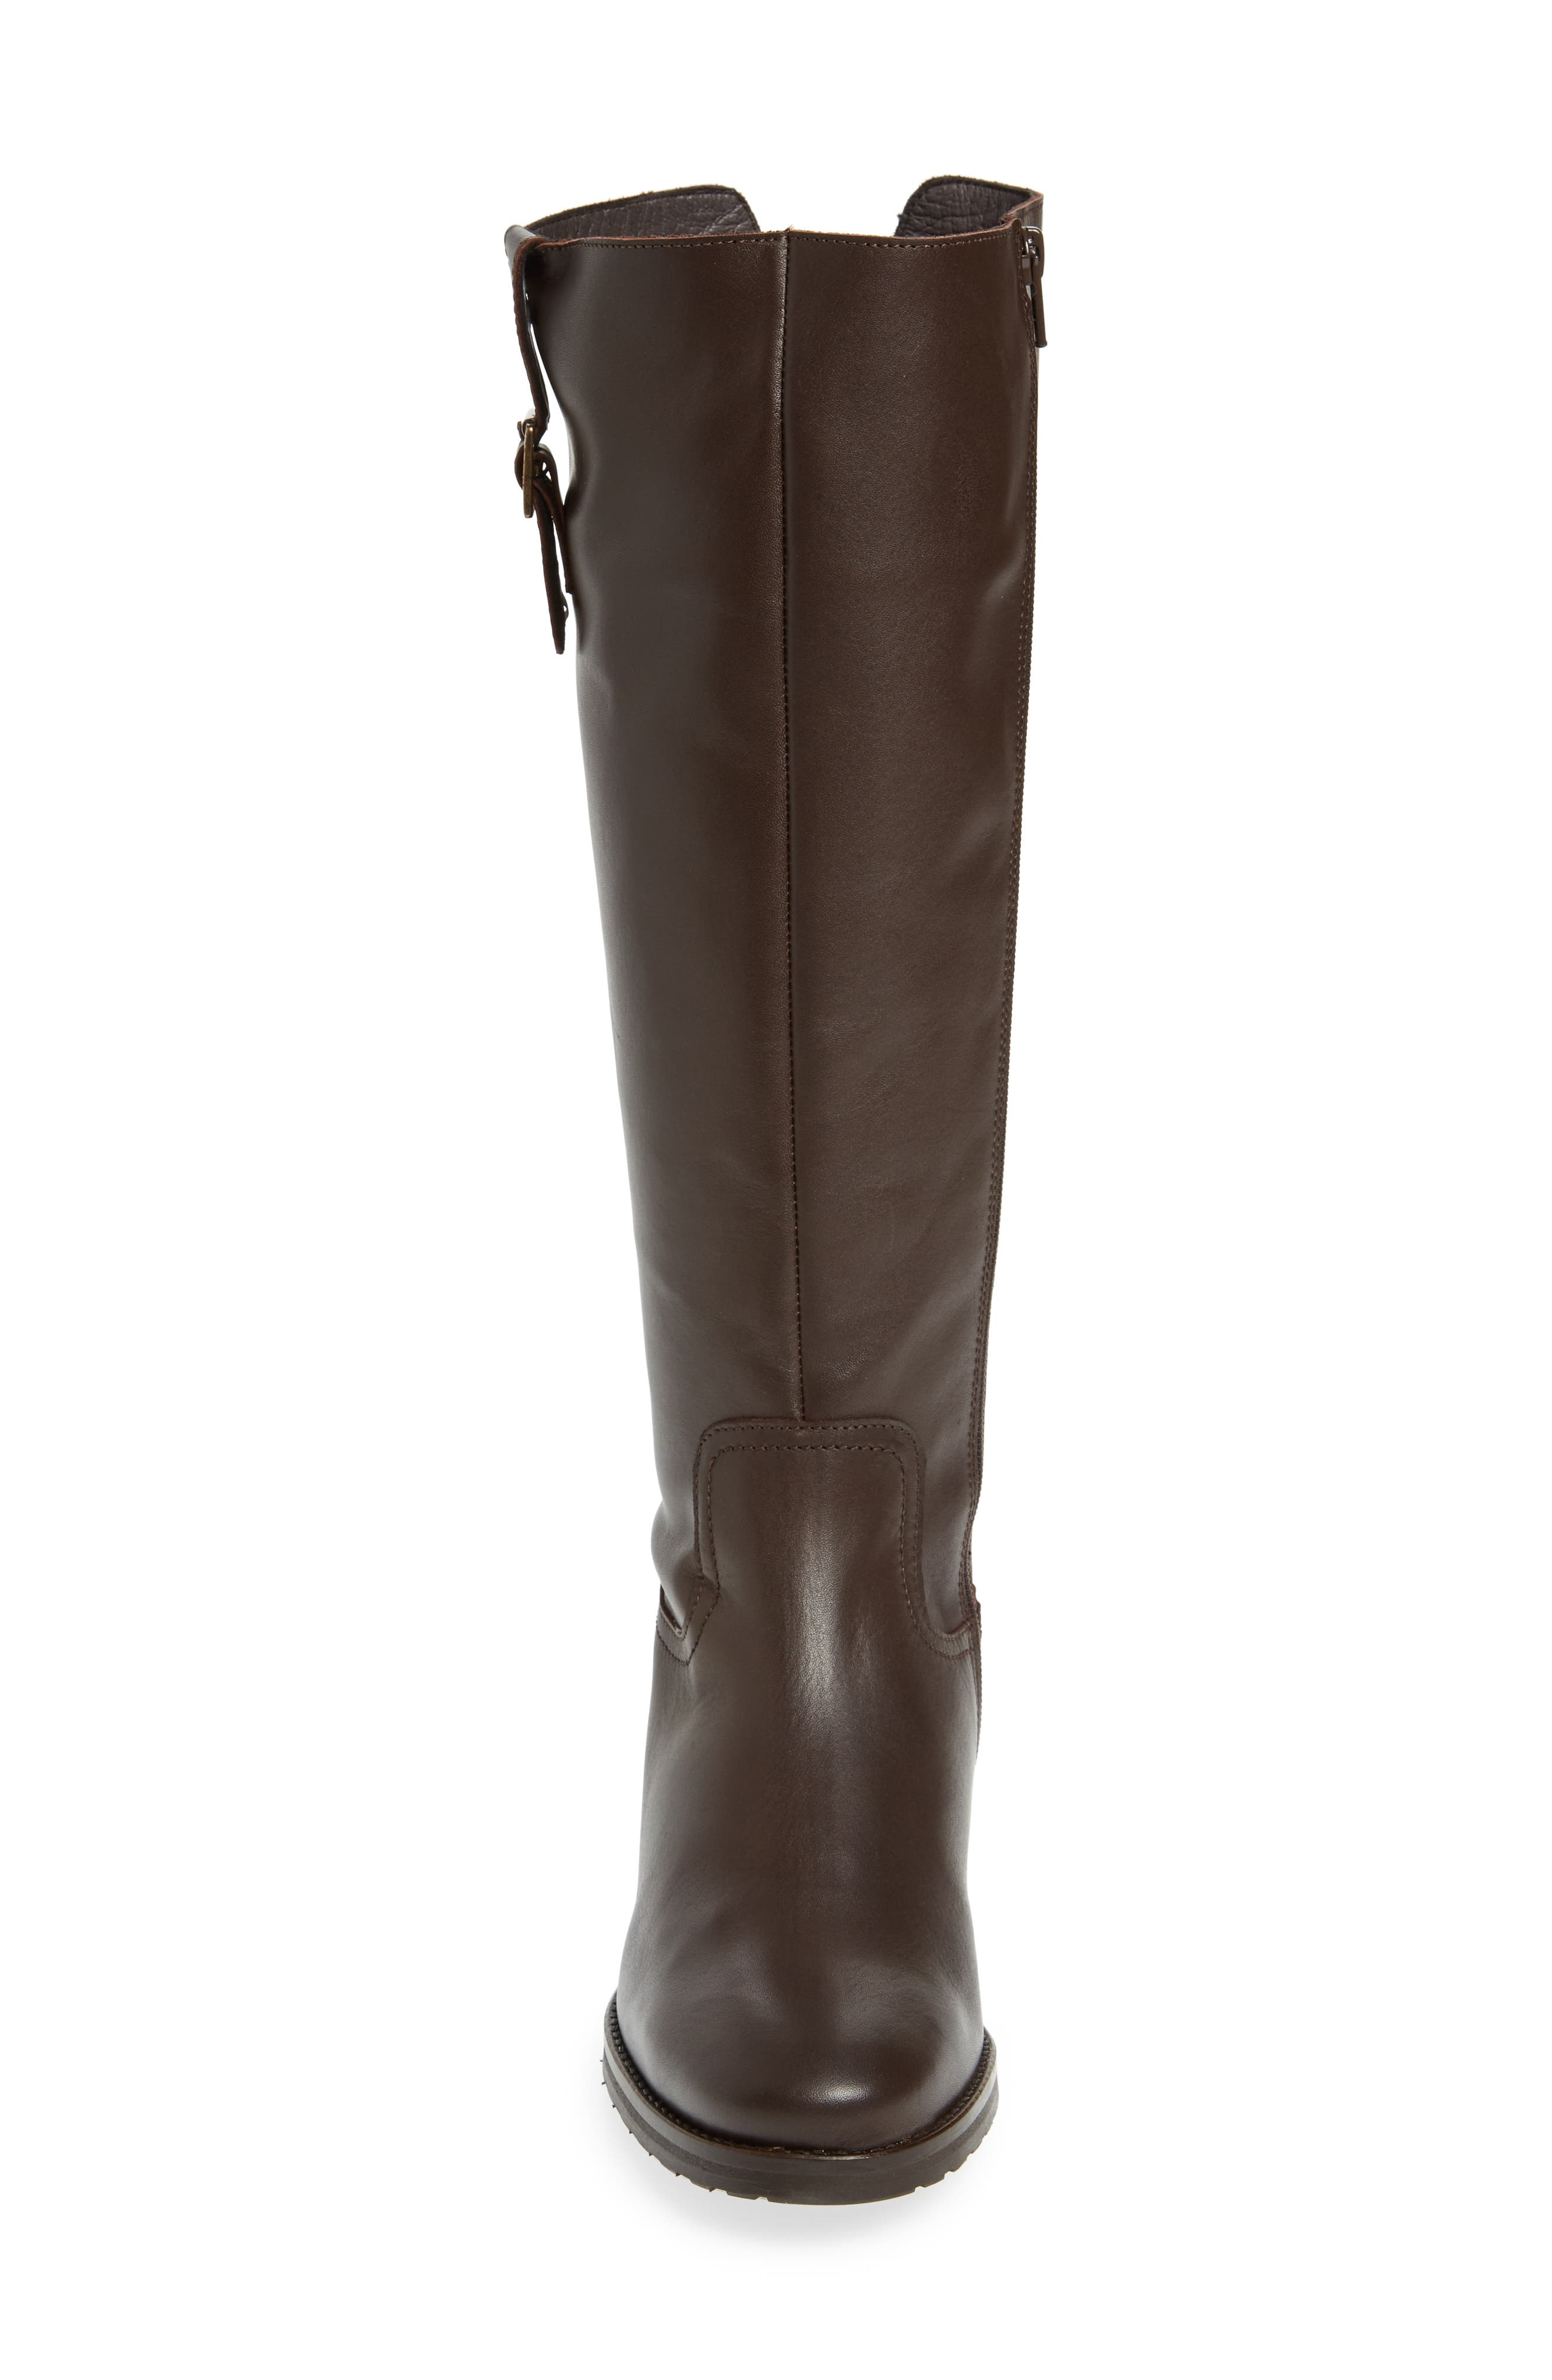 Anson Waterproof Boot,                             Alternate thumbnail 4, color,                             Brown Leather